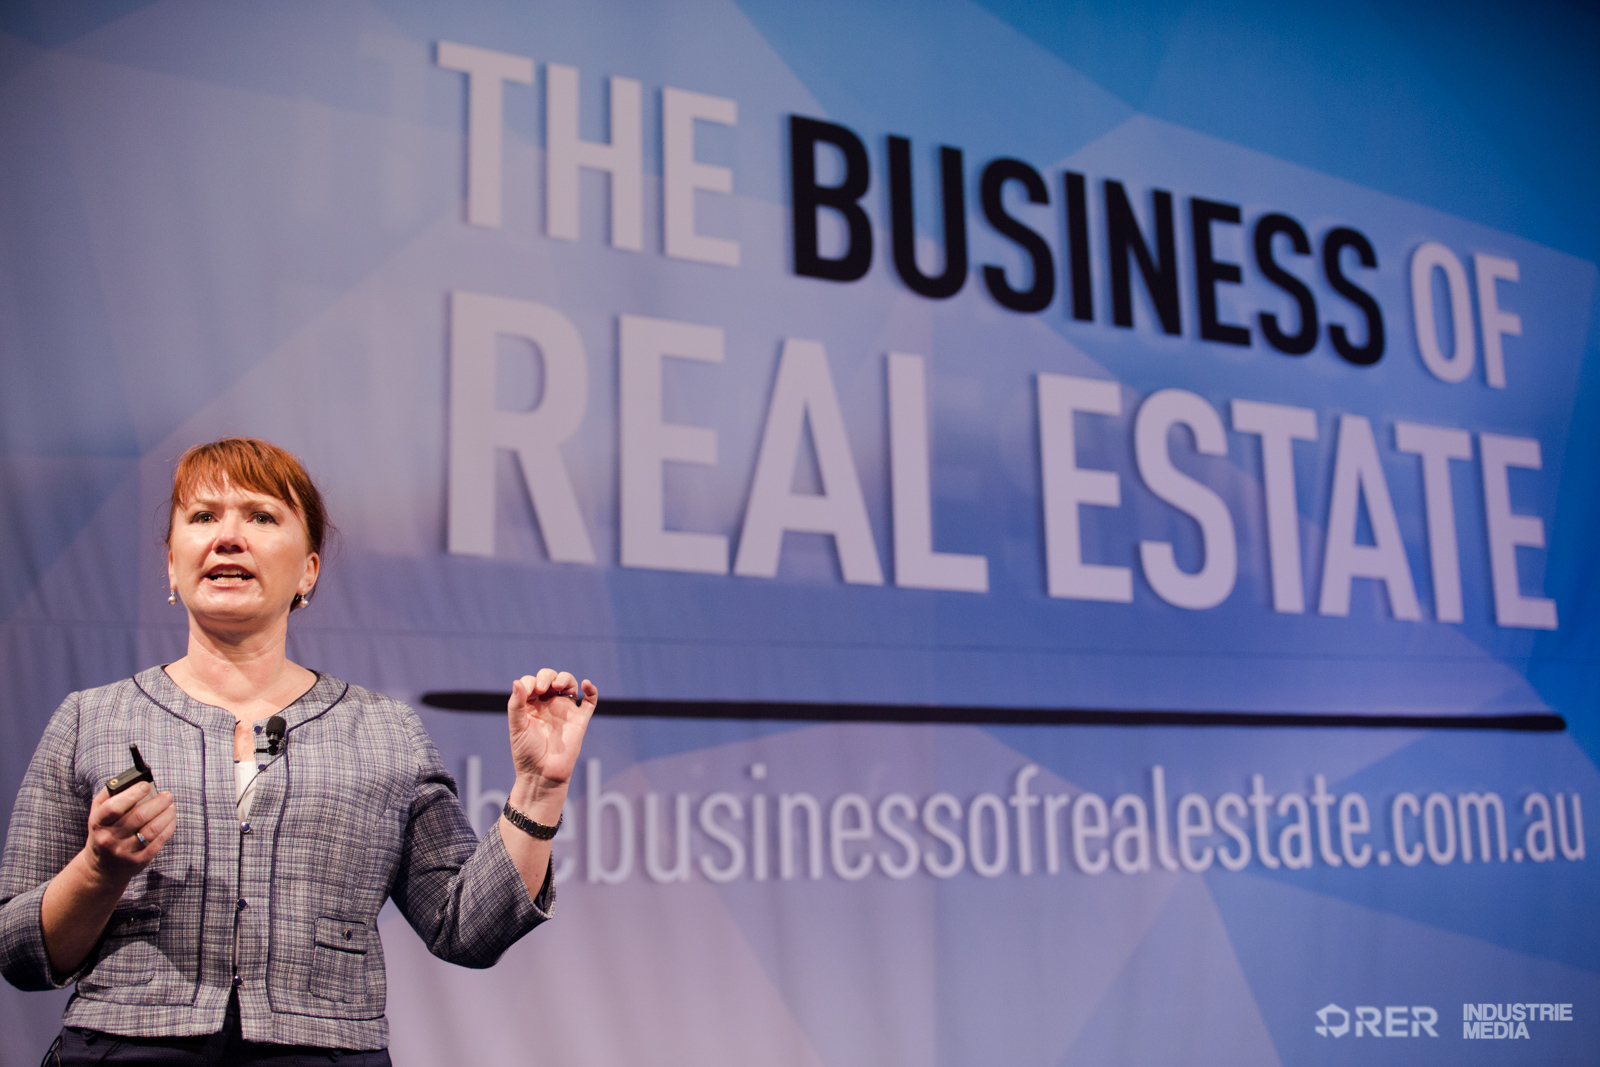 http://www.thebusinessofrealestate.com.au/wp-content/uploads/2016/09/RER_BUSINESS_OF_REAL_ESTATE_DAY_2-70.jpg